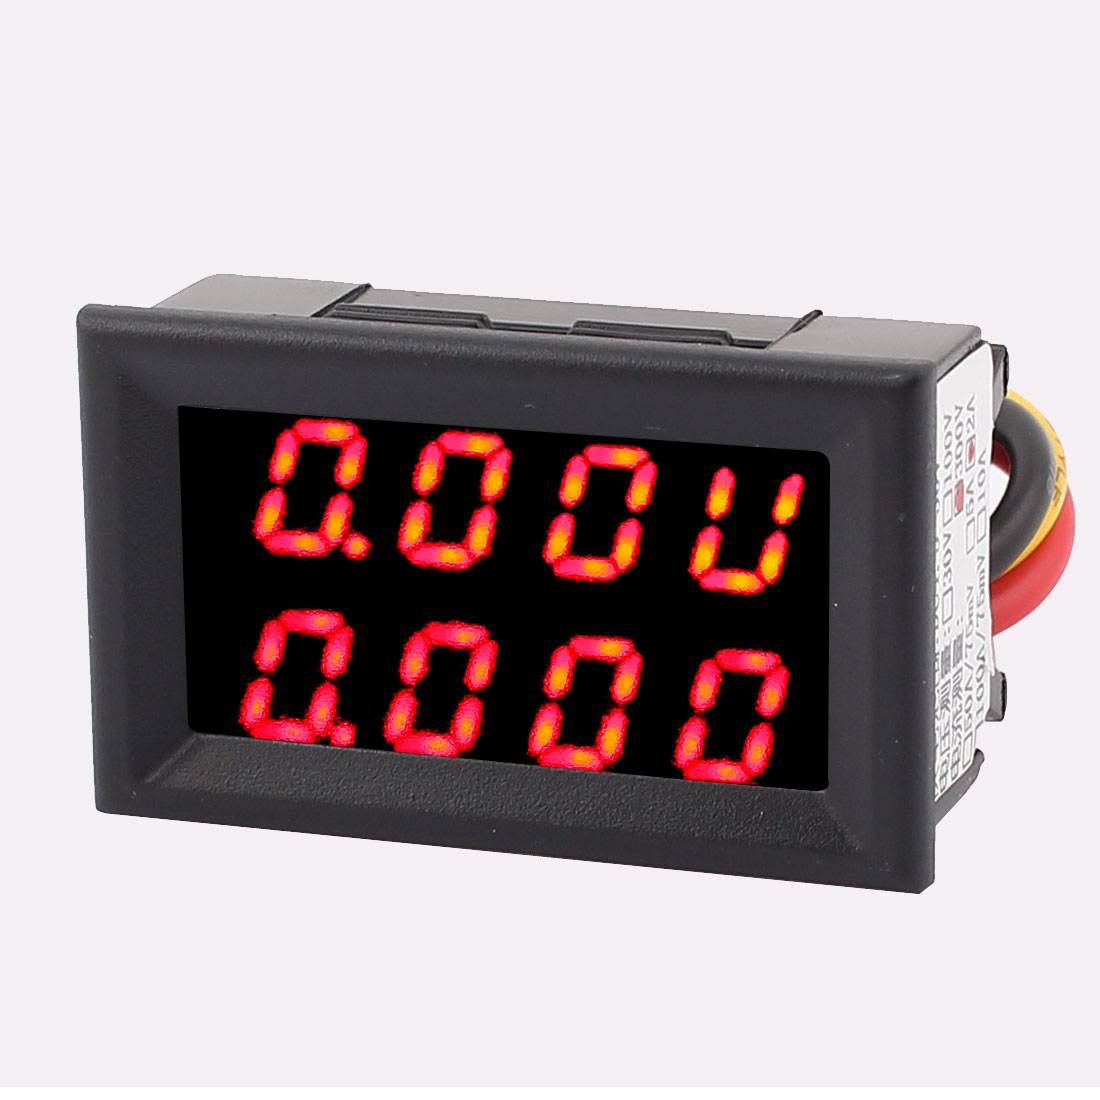 DC 0-300V 0-2A Red LED Dual Digital Panel Voltmeter Ammeter Meter Gauge